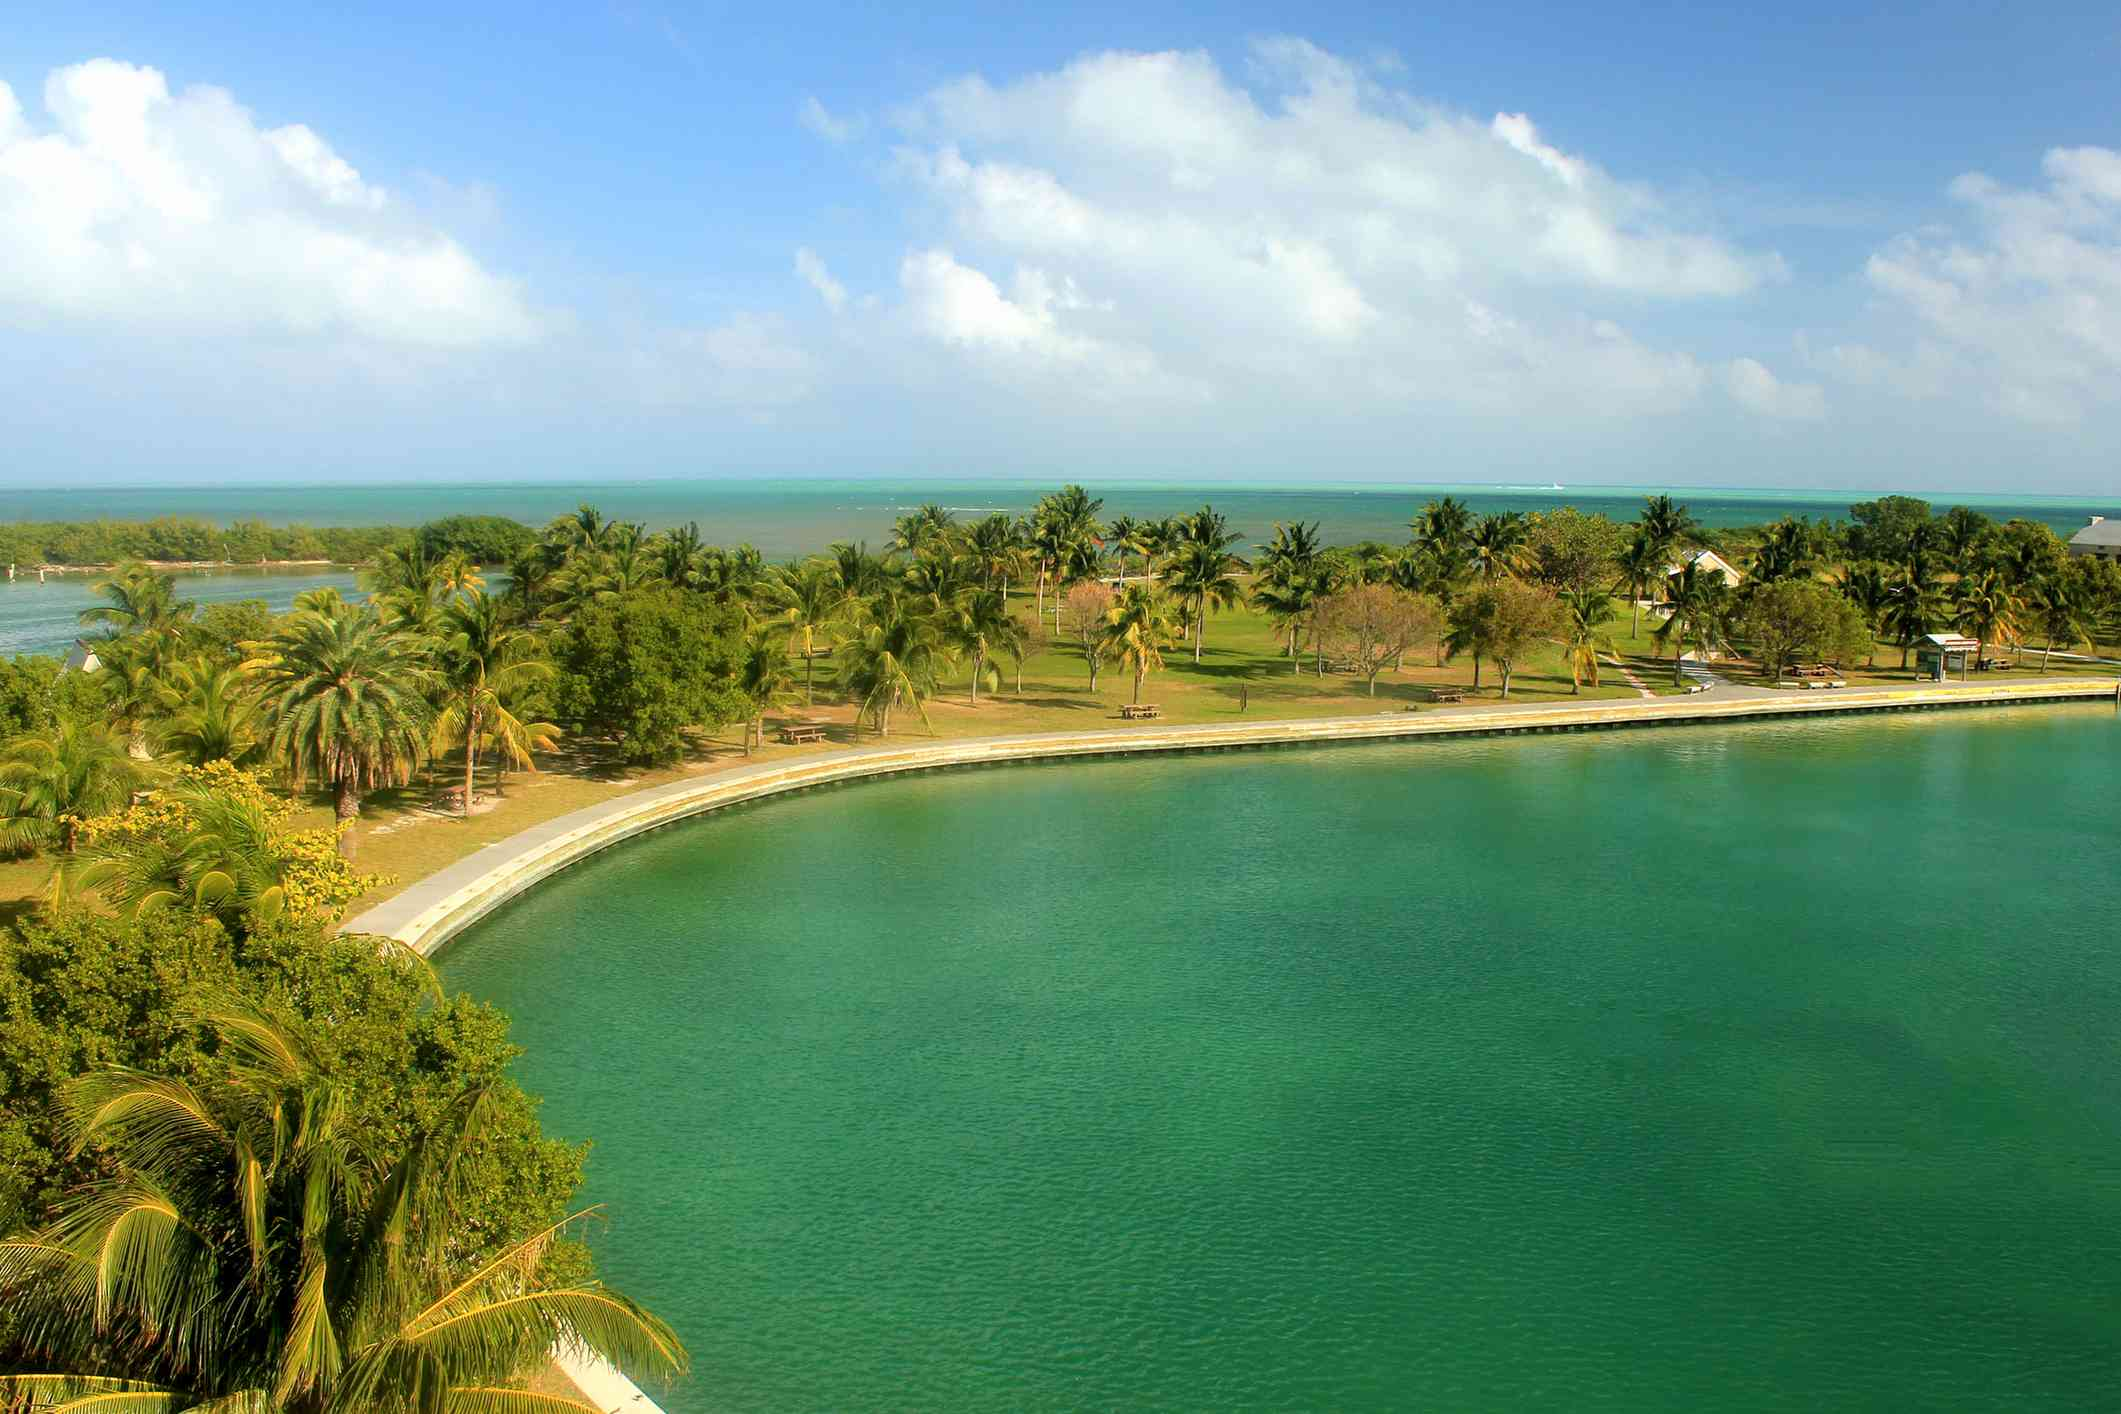 shoreline at Biscayne National Park with water on both sides of a narrow strip of land covered with palm trees